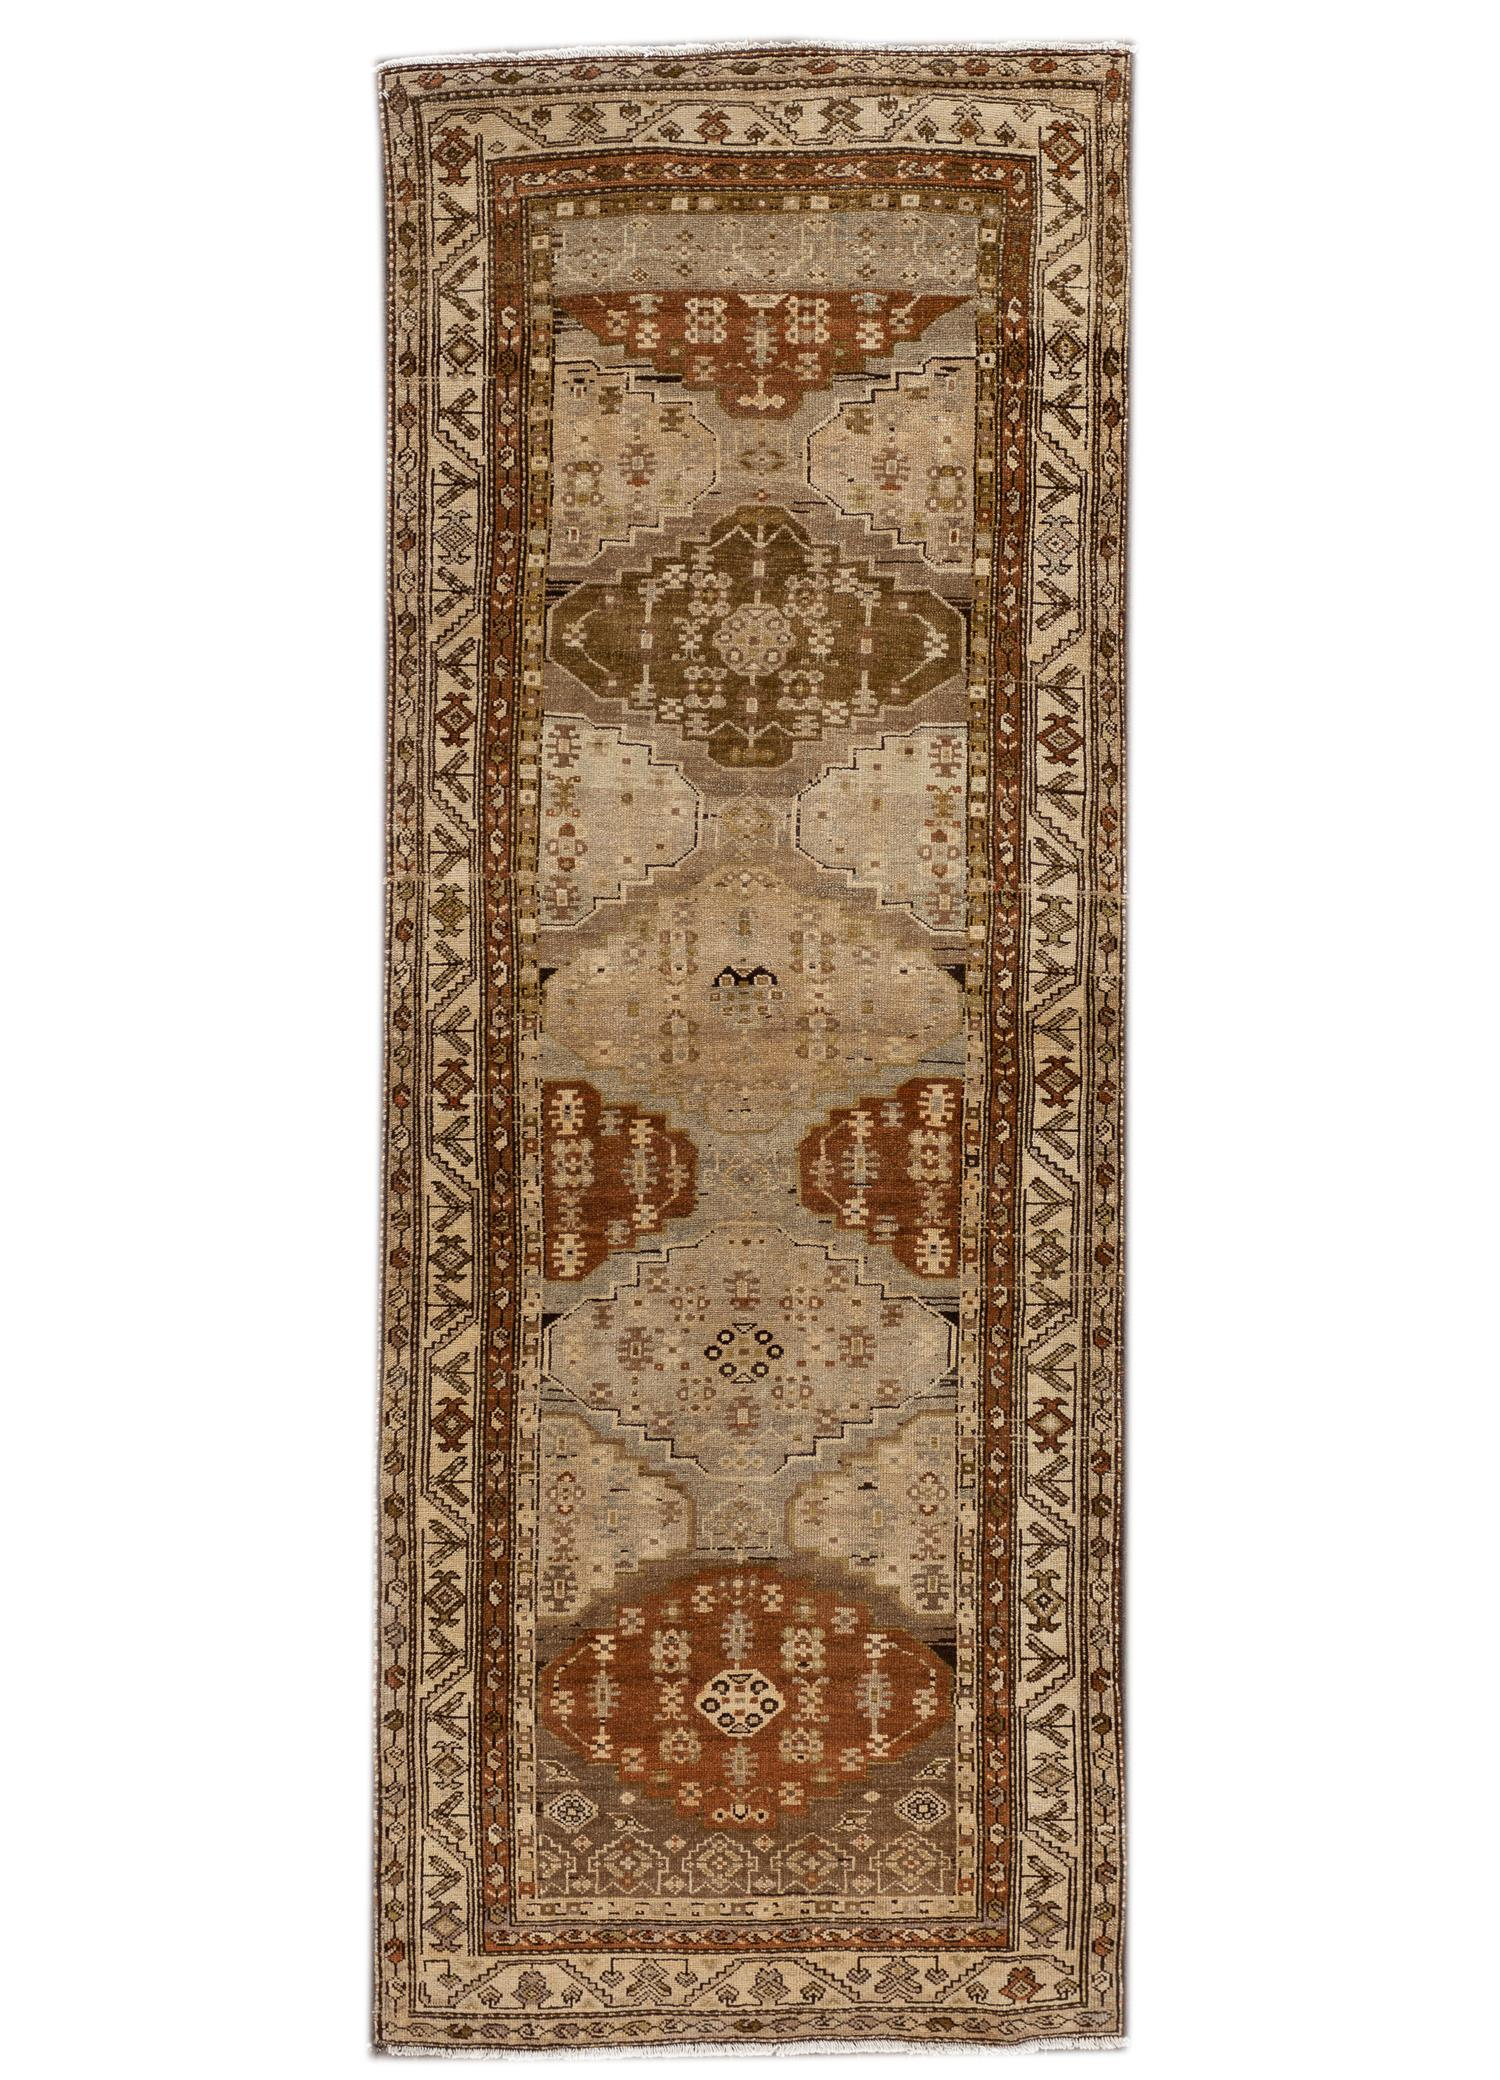 Antique Malayer Runner, #10235265, 3X9